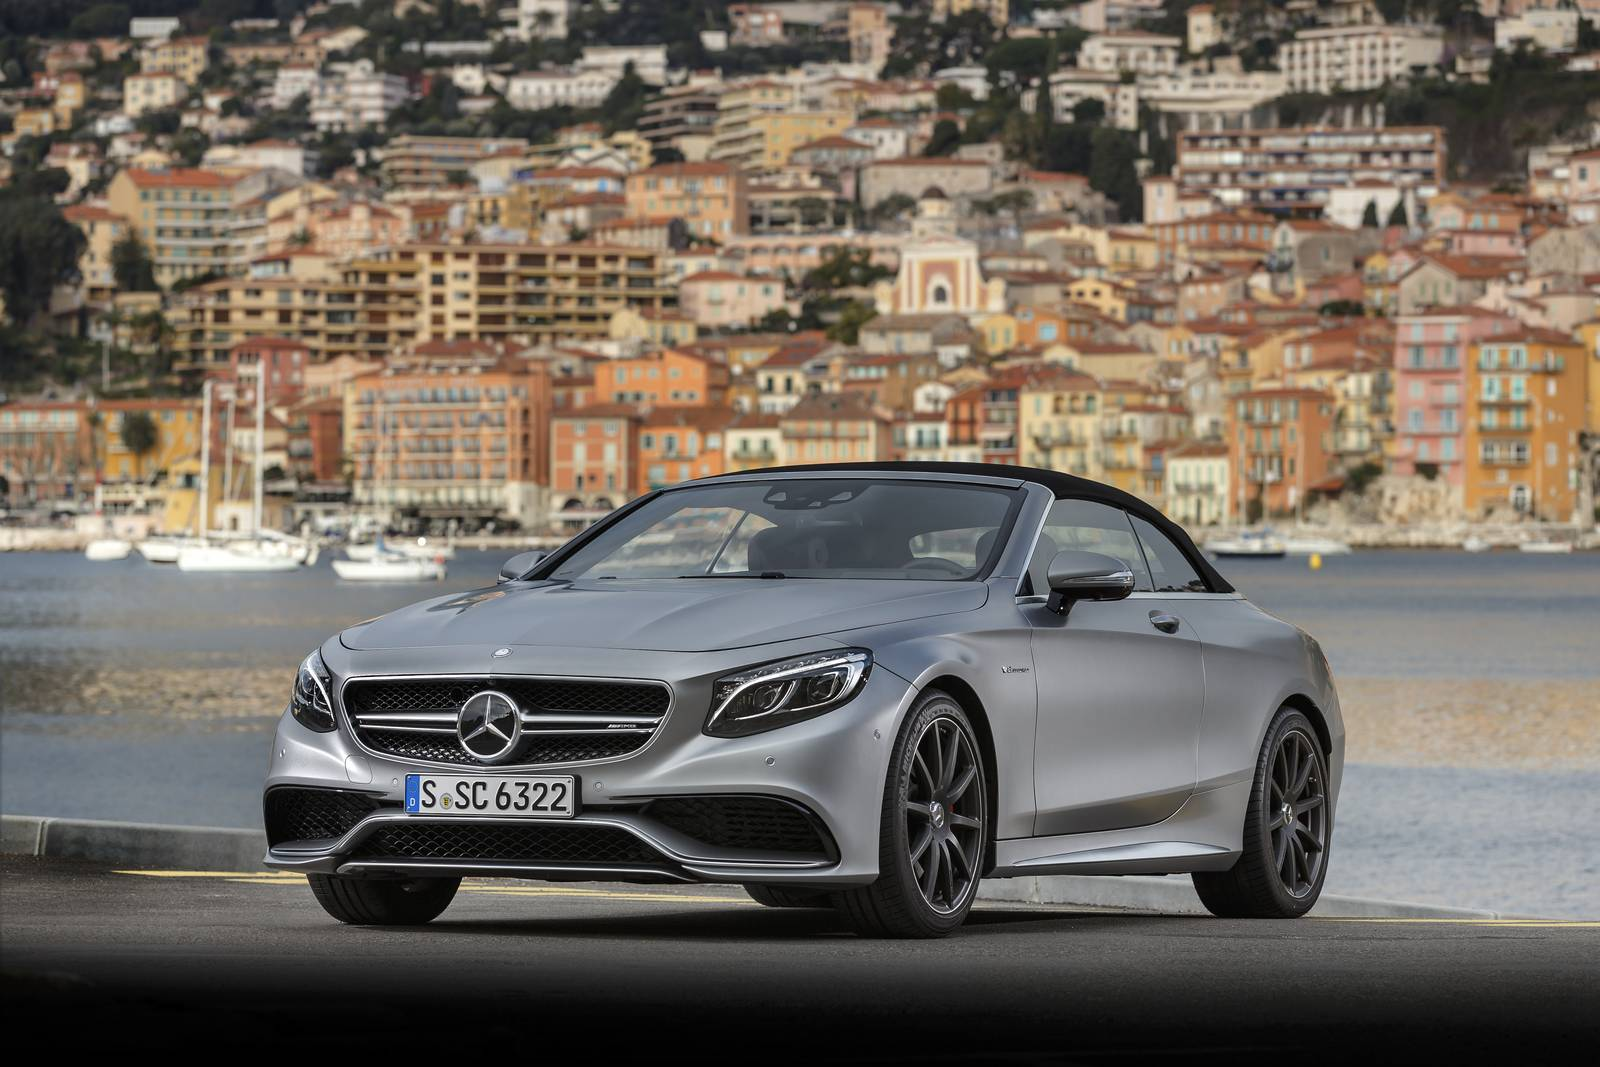 2017 mercedes benz s500 s63 amg cabriolet review gtspirit for Mercedes benz s63 amg biturbo